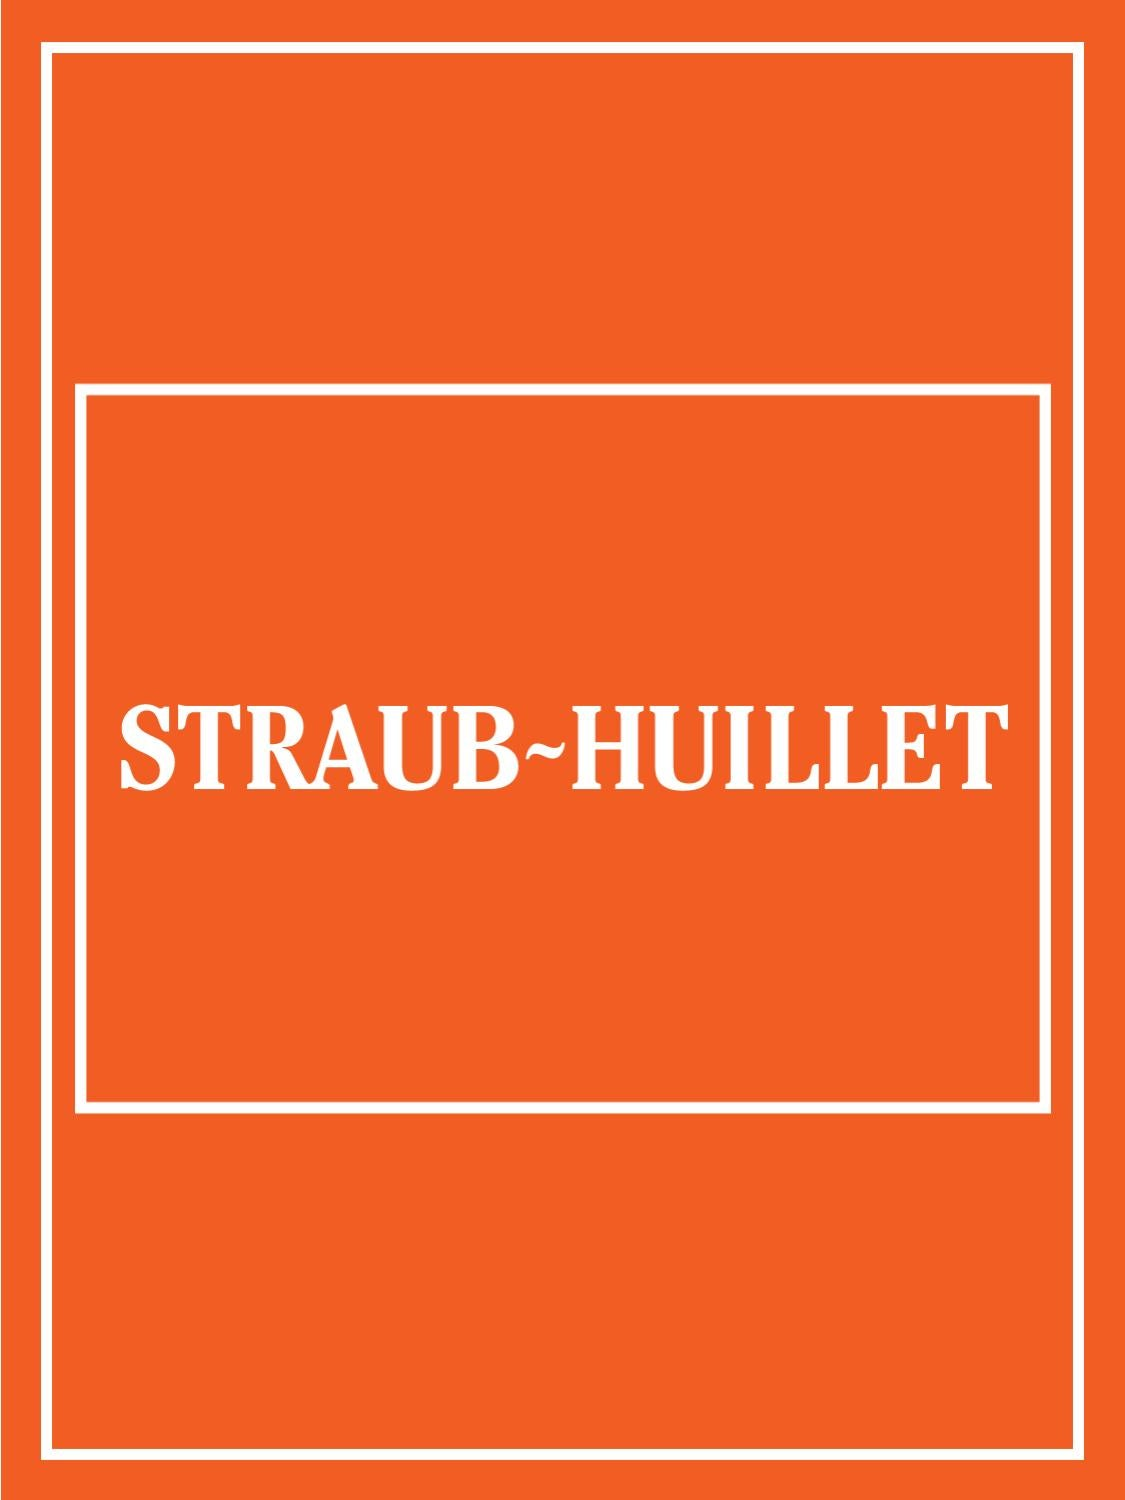 23e23d0d5 Mostra Straub-Huillet by Straub Huillet - issuu